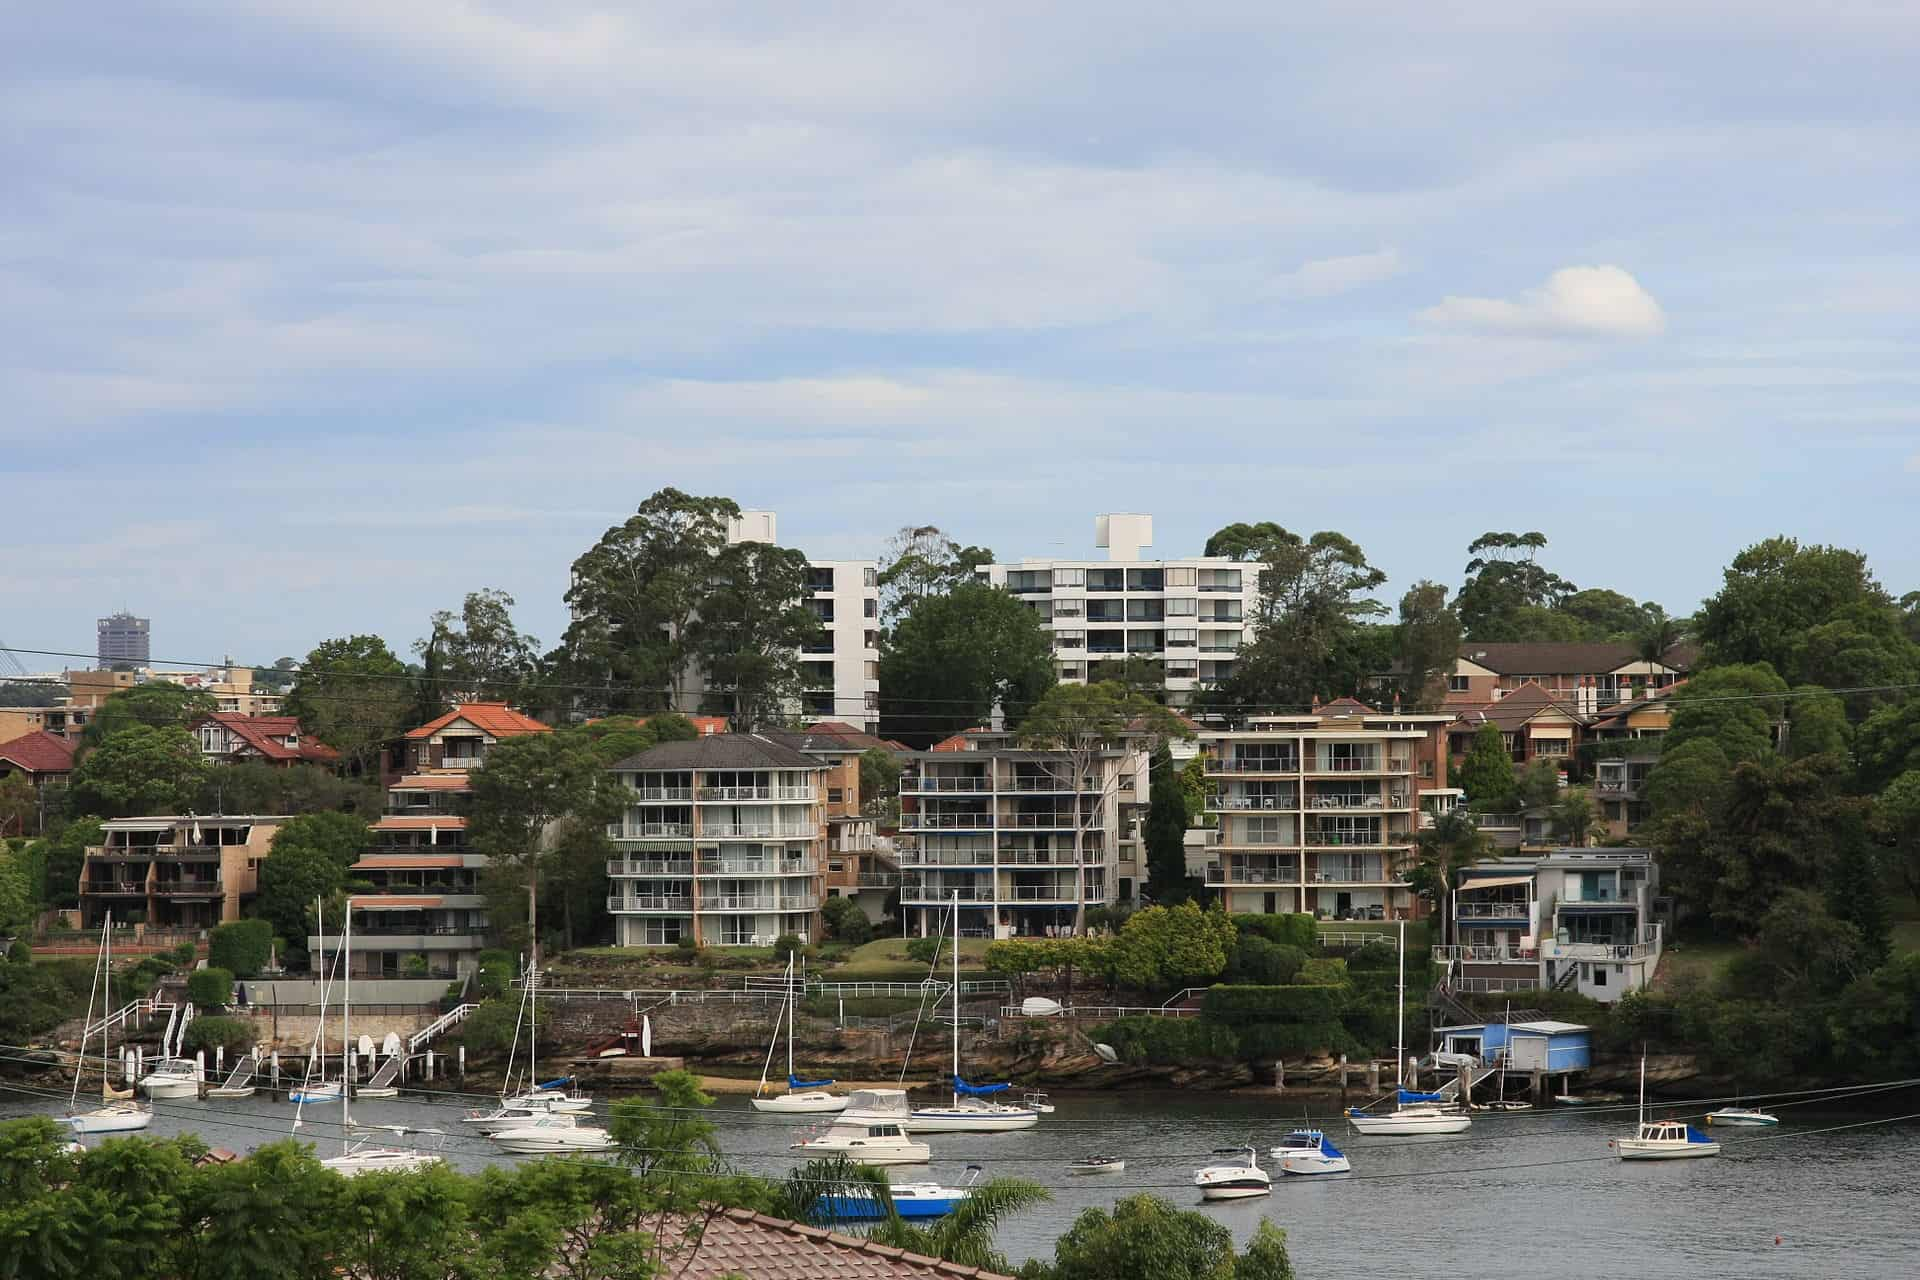 Drummoyne, new south wales